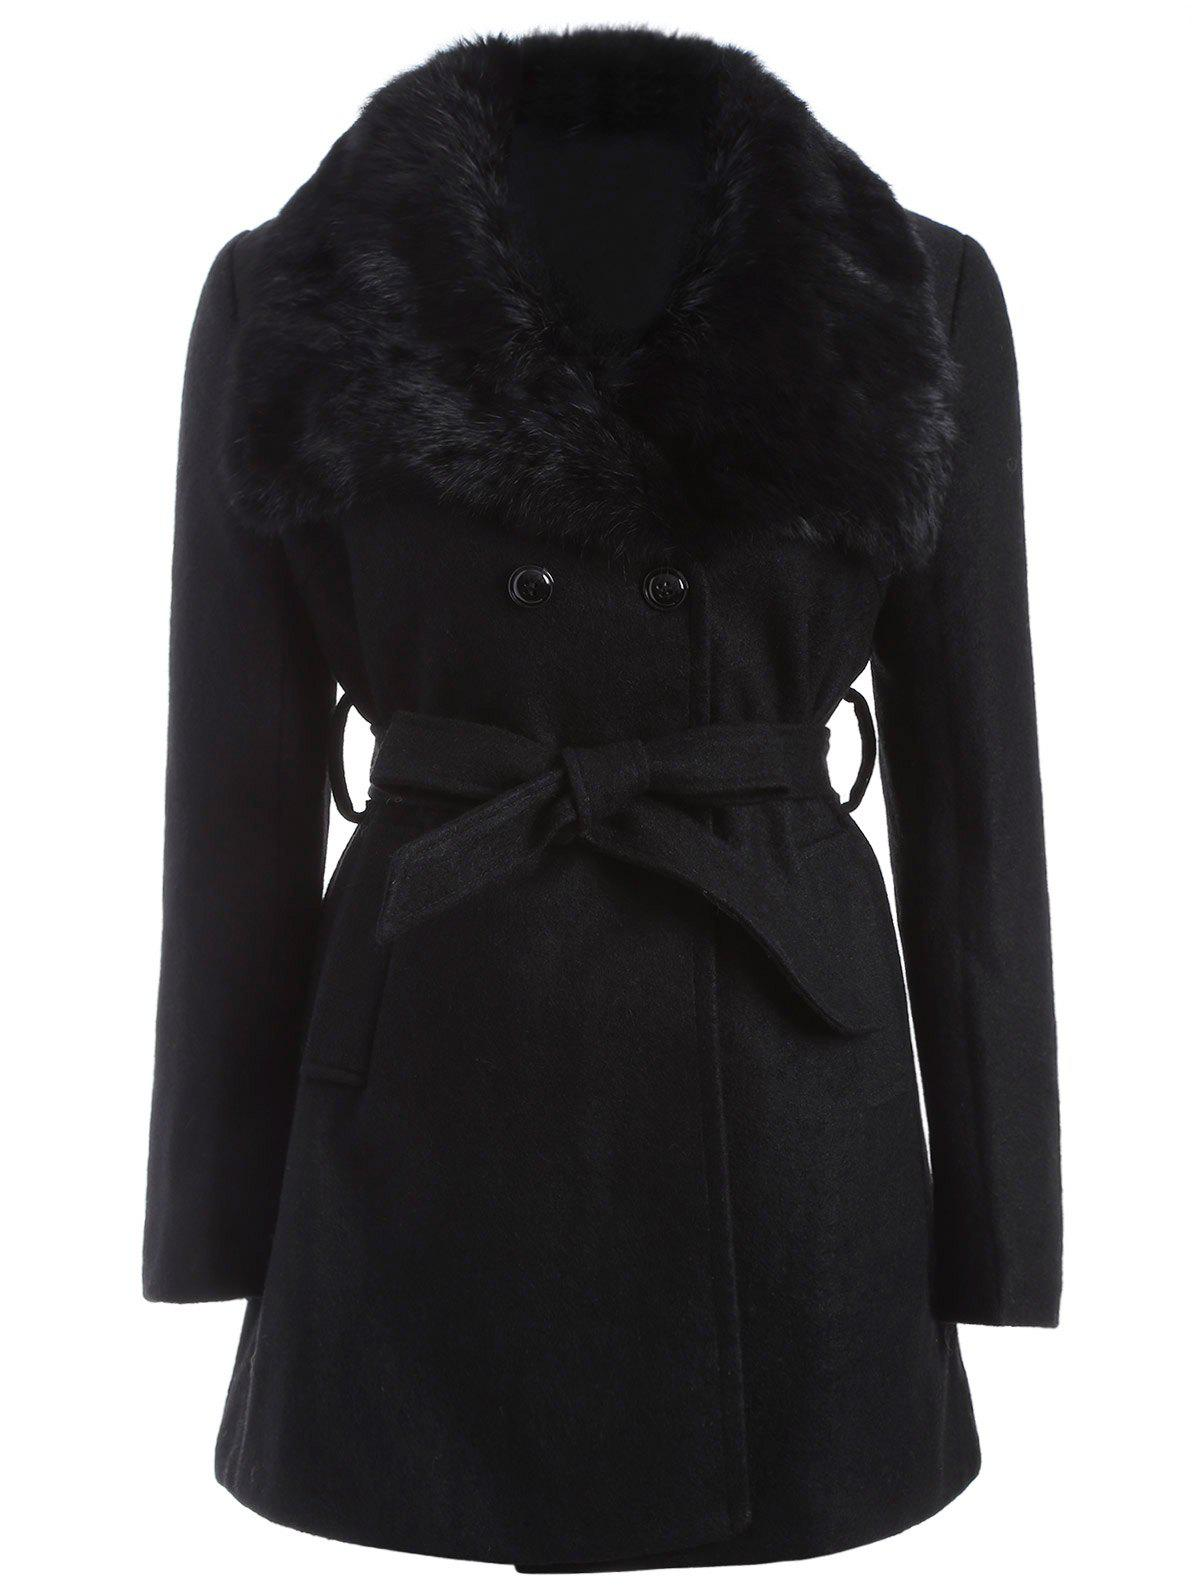 Plus Size Faux Fur Belted Woolen CoatWOMEN<br><br>Size: 3XL; Color: BLACK; Clothes Type: Wool &amp; Blends; Material: Faux Fur,Polyester; Type: Wide-waisted; Shirt Length: Long; Sleeve Length: Full; Collar: Turn-down Collar; Pattern Type: Others; Embellishment: Fur; Style: Fashion; Season: Winter; With Belt: Yes; Weight: 1.200kg; Package Contents: 1 x Coat  1 x Belt;